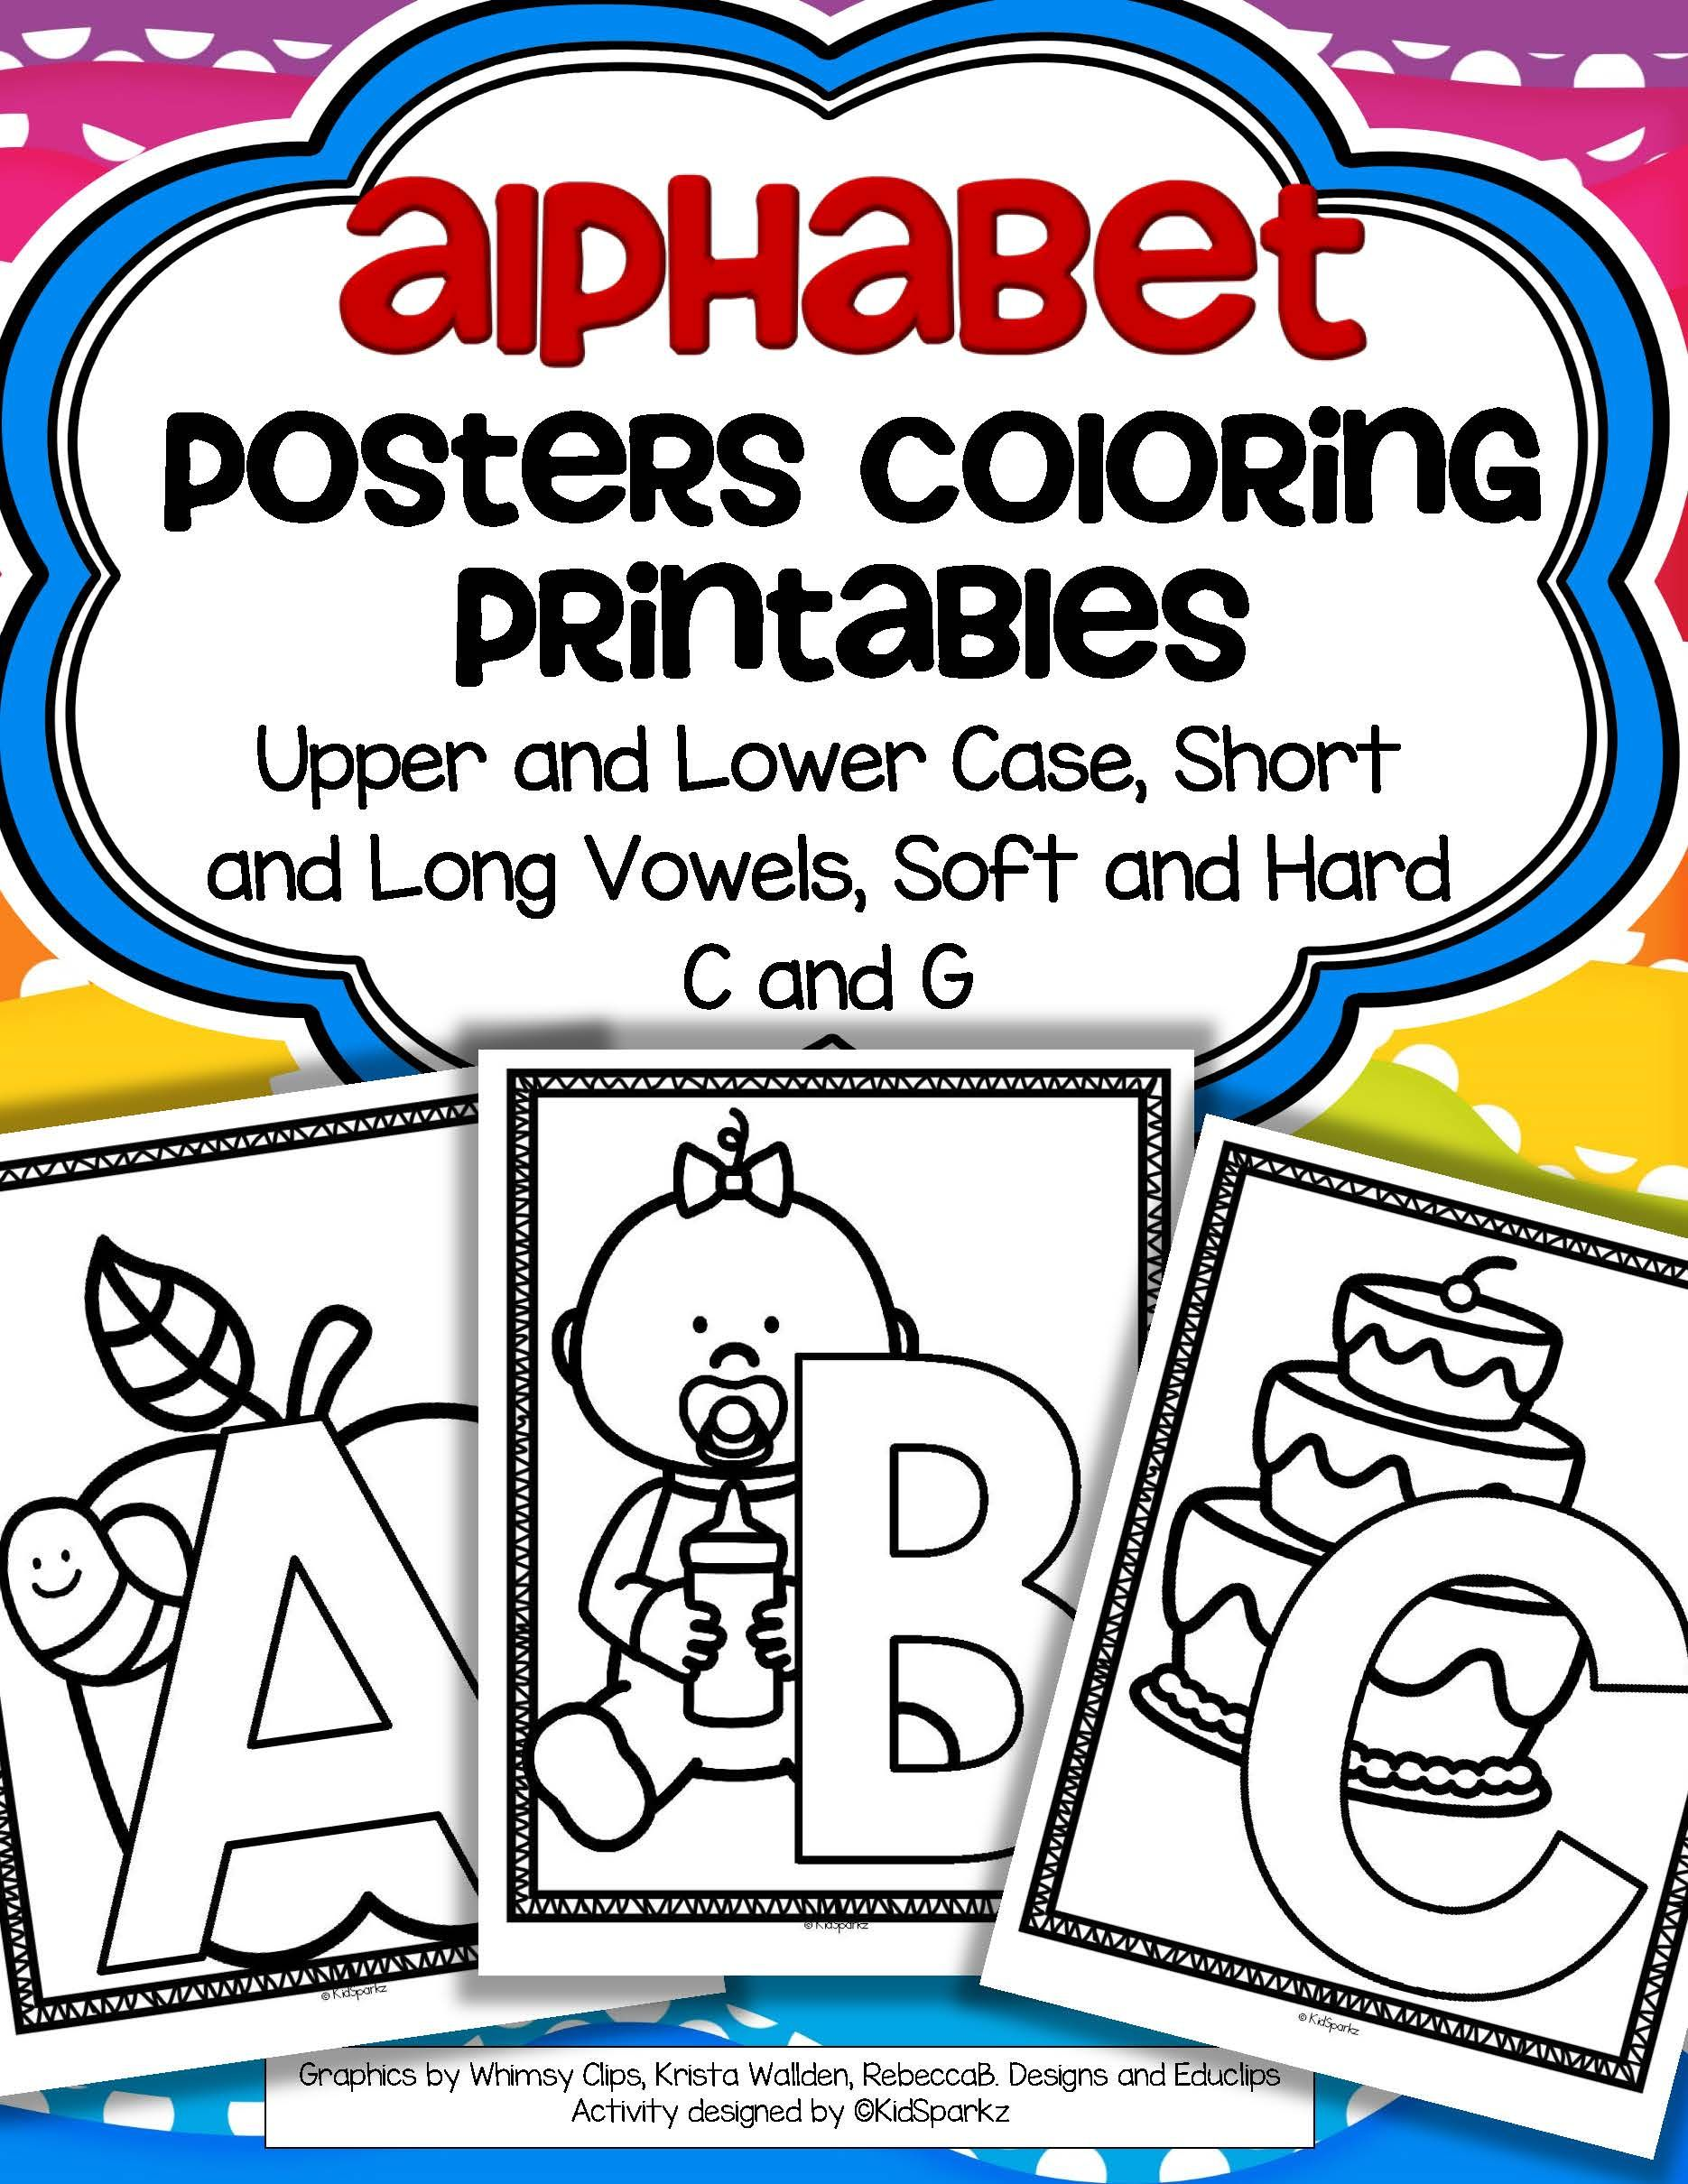 Alphabet Posters Coloring Printables Upper And Lower Case